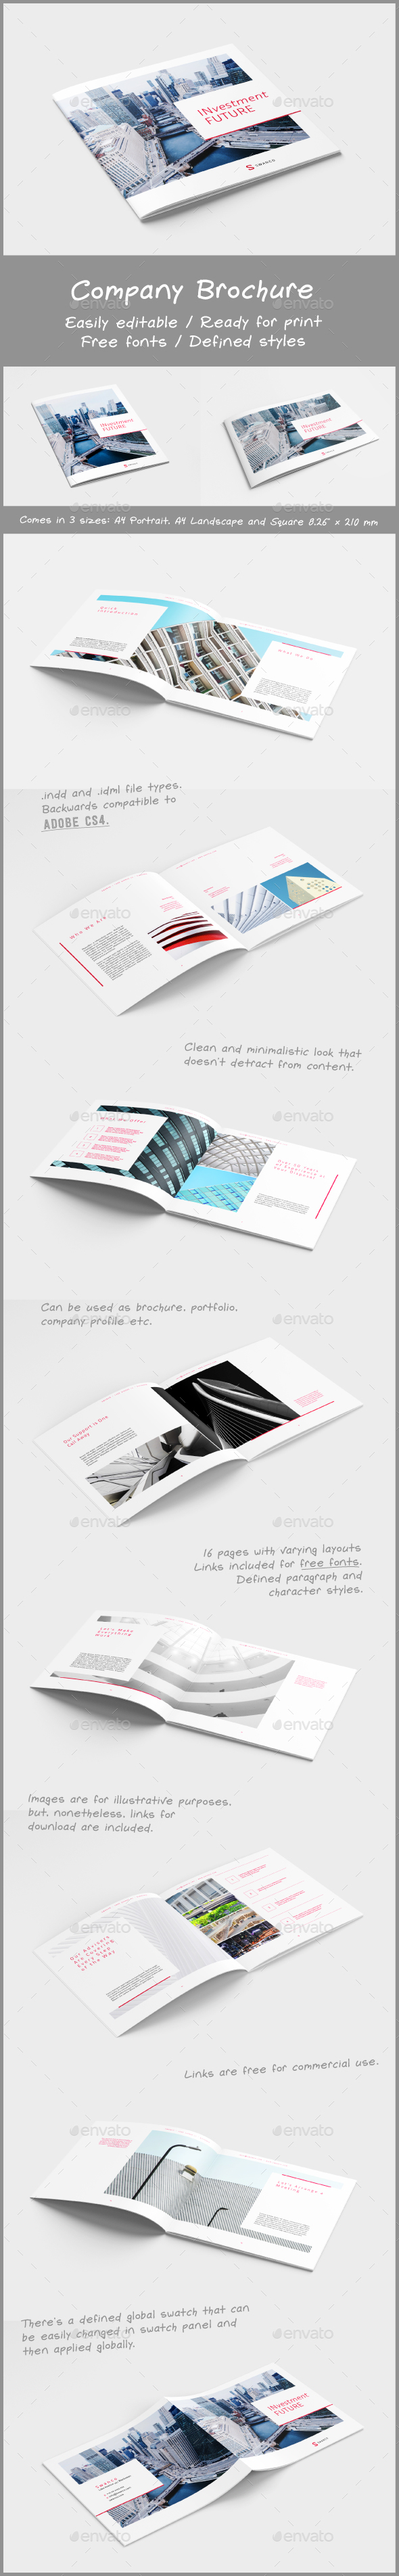 Business Corporate Brochure - Corporate Brochures